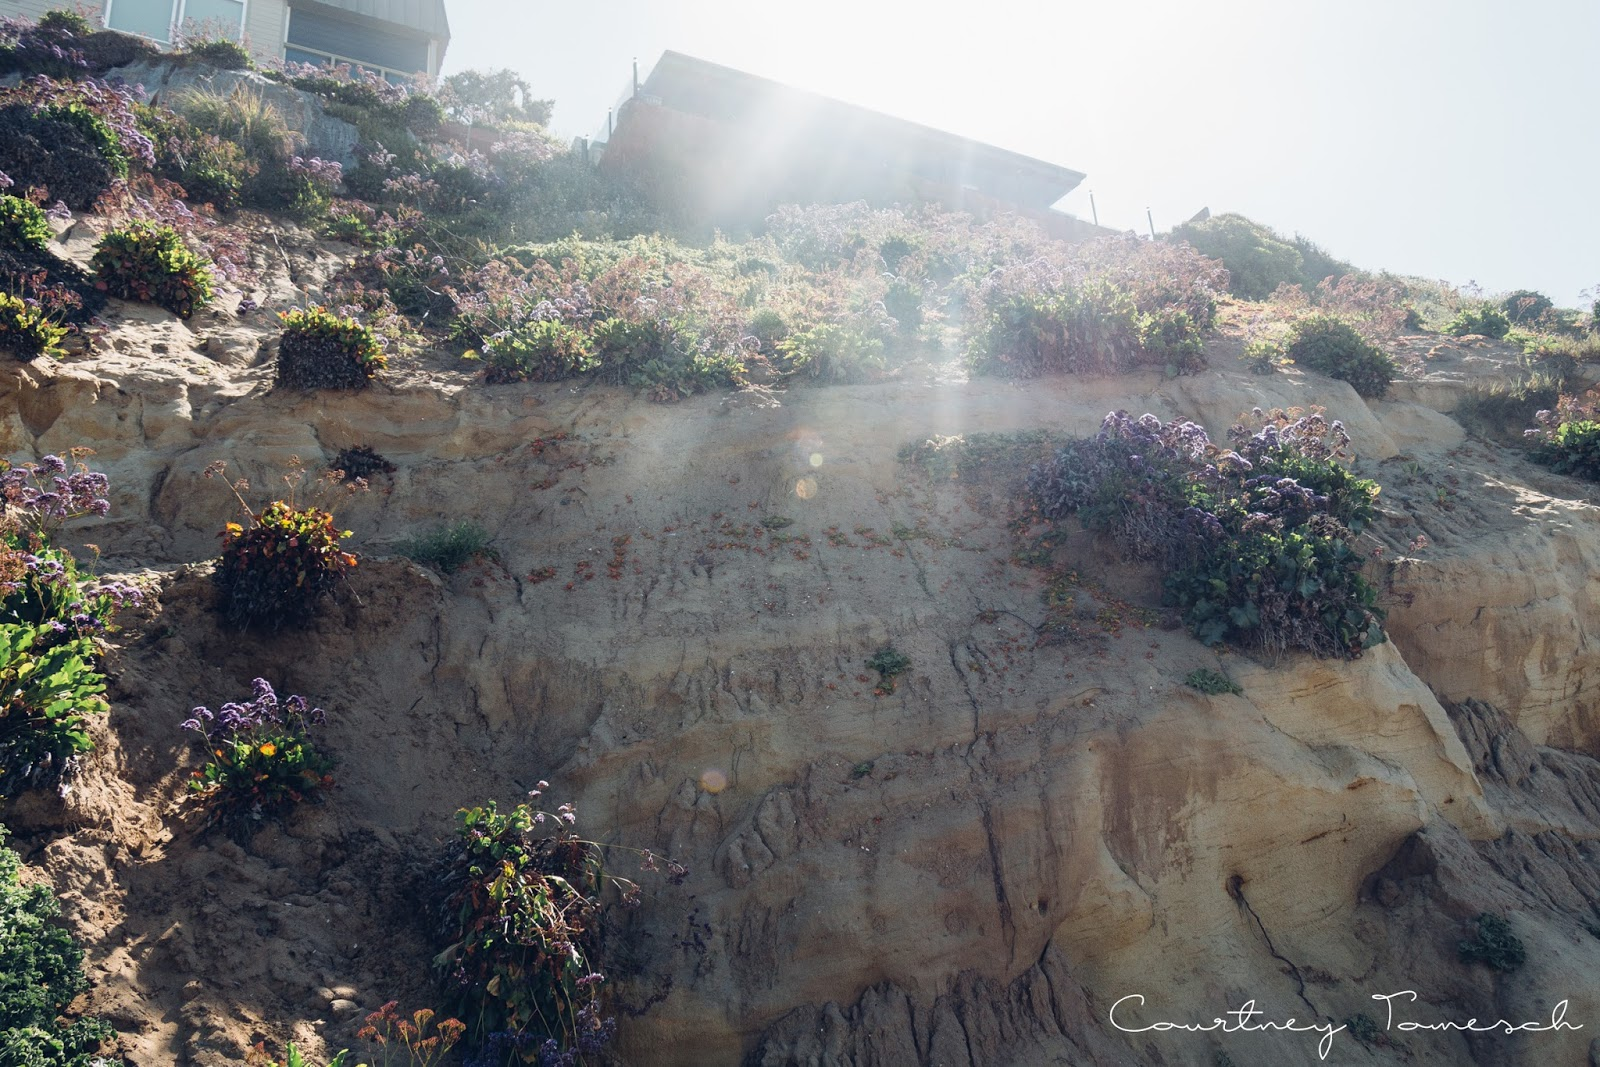 Courtney Tomesch Exploring Self Realization Fellowship and Moonlight Beach